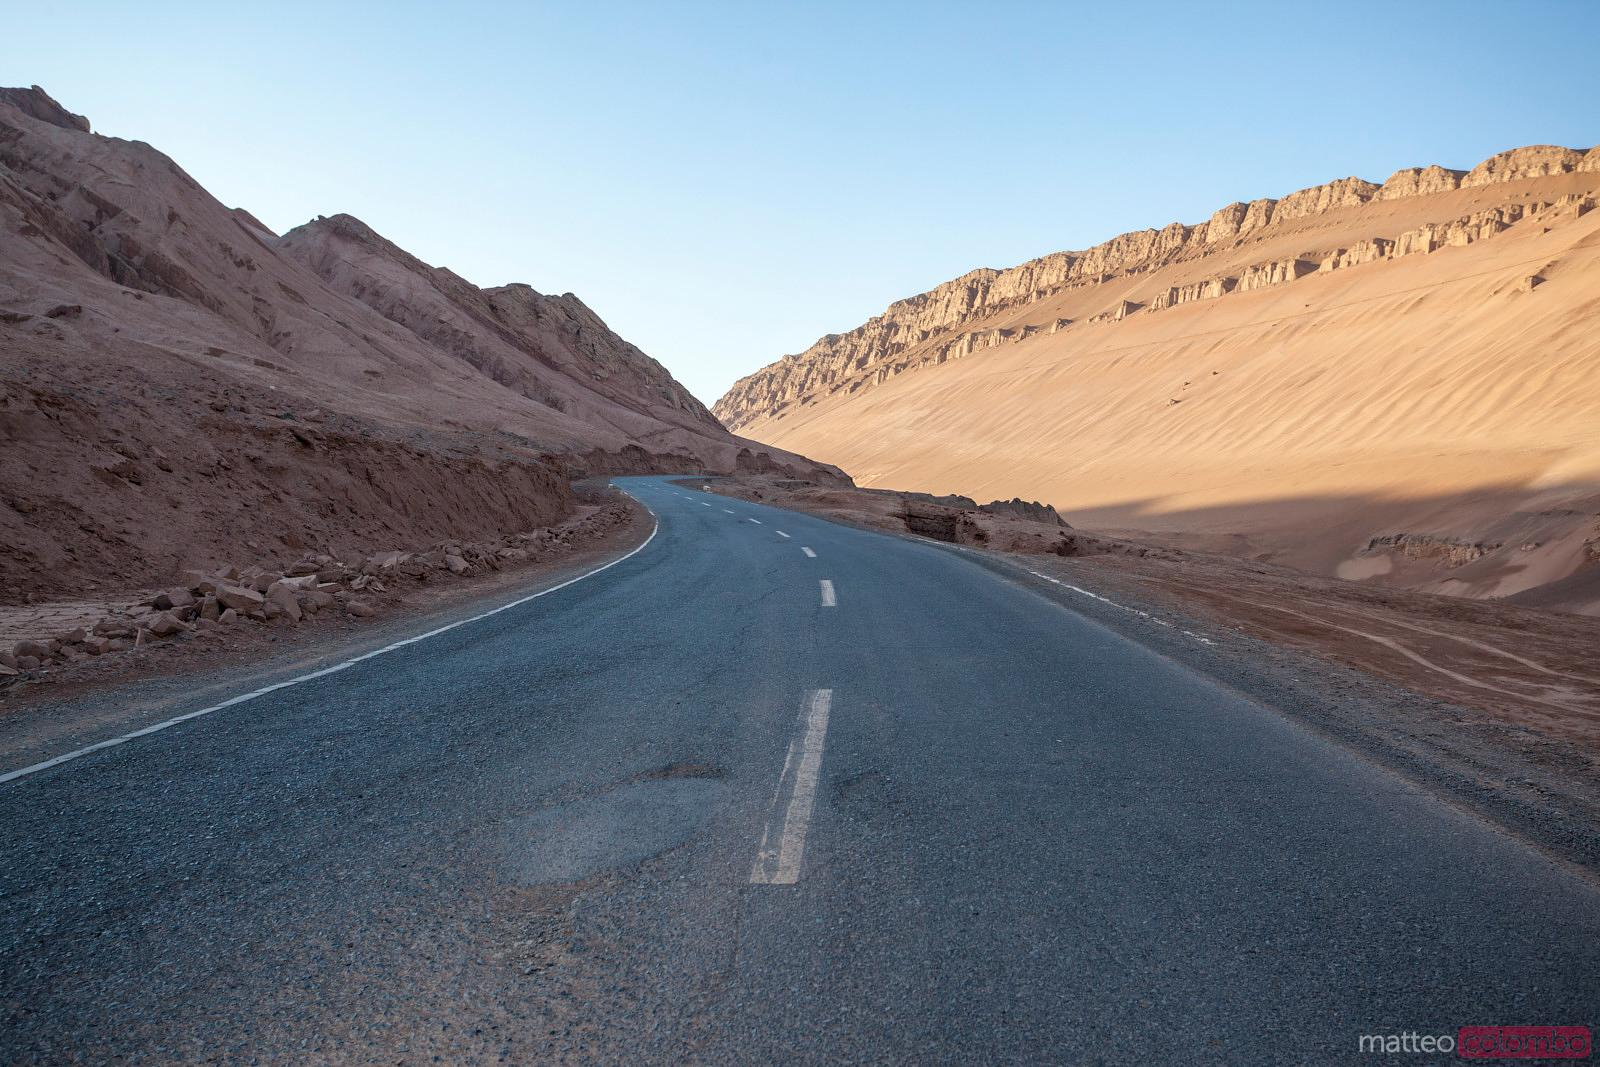 Deserted road through the mountains, Xinjiang, China